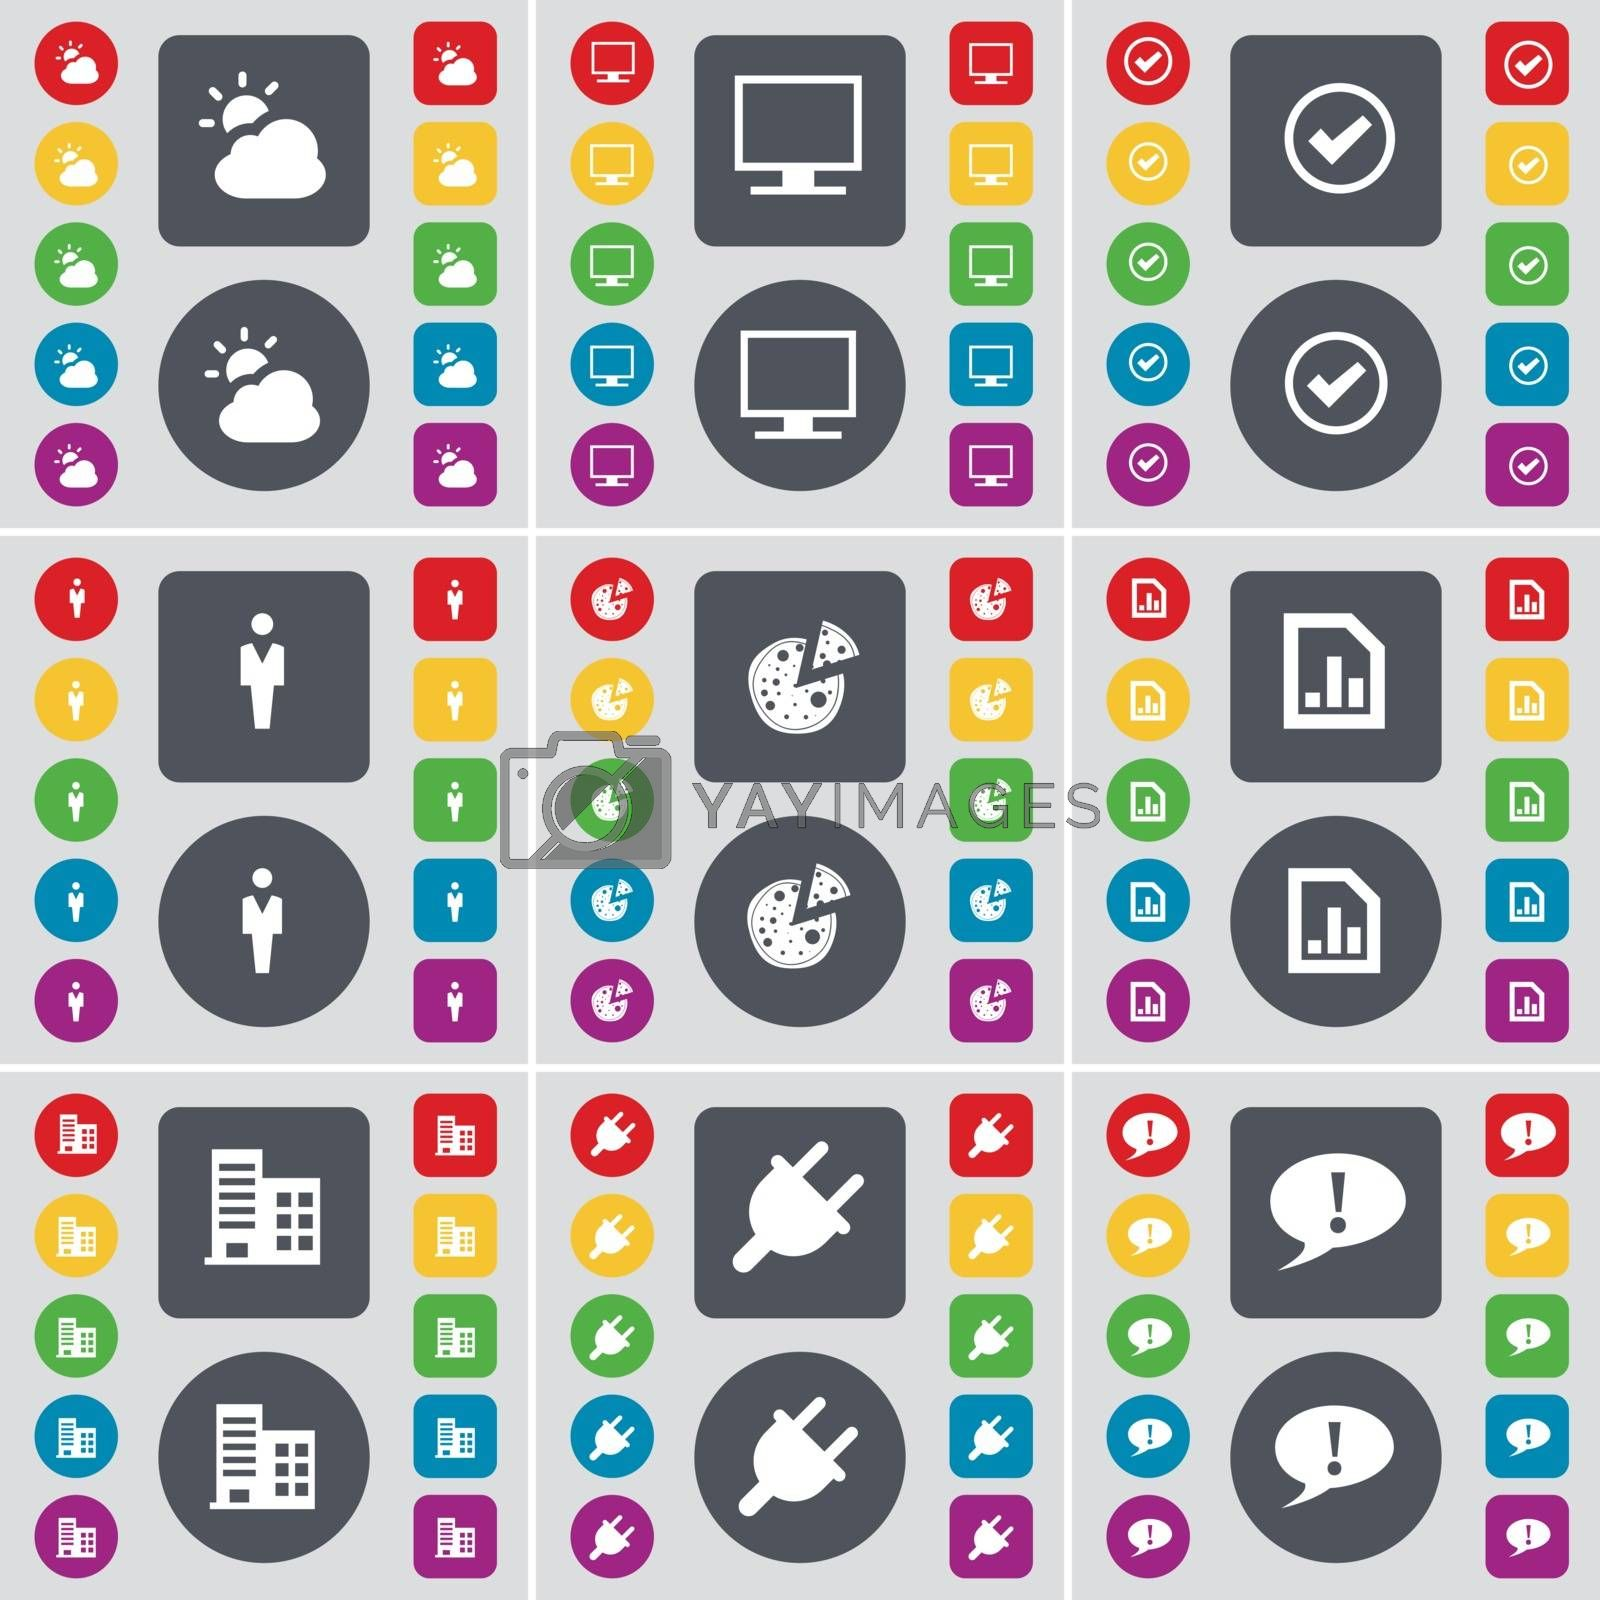 Royalty free image of Cloud, Monitor, Tick, Silhouette, Pizza, Graph file, Building, Socket, Chat bubble icon symbol. A large set of flat, colored buttons for your design. Vector by serhii_lohvyniuk